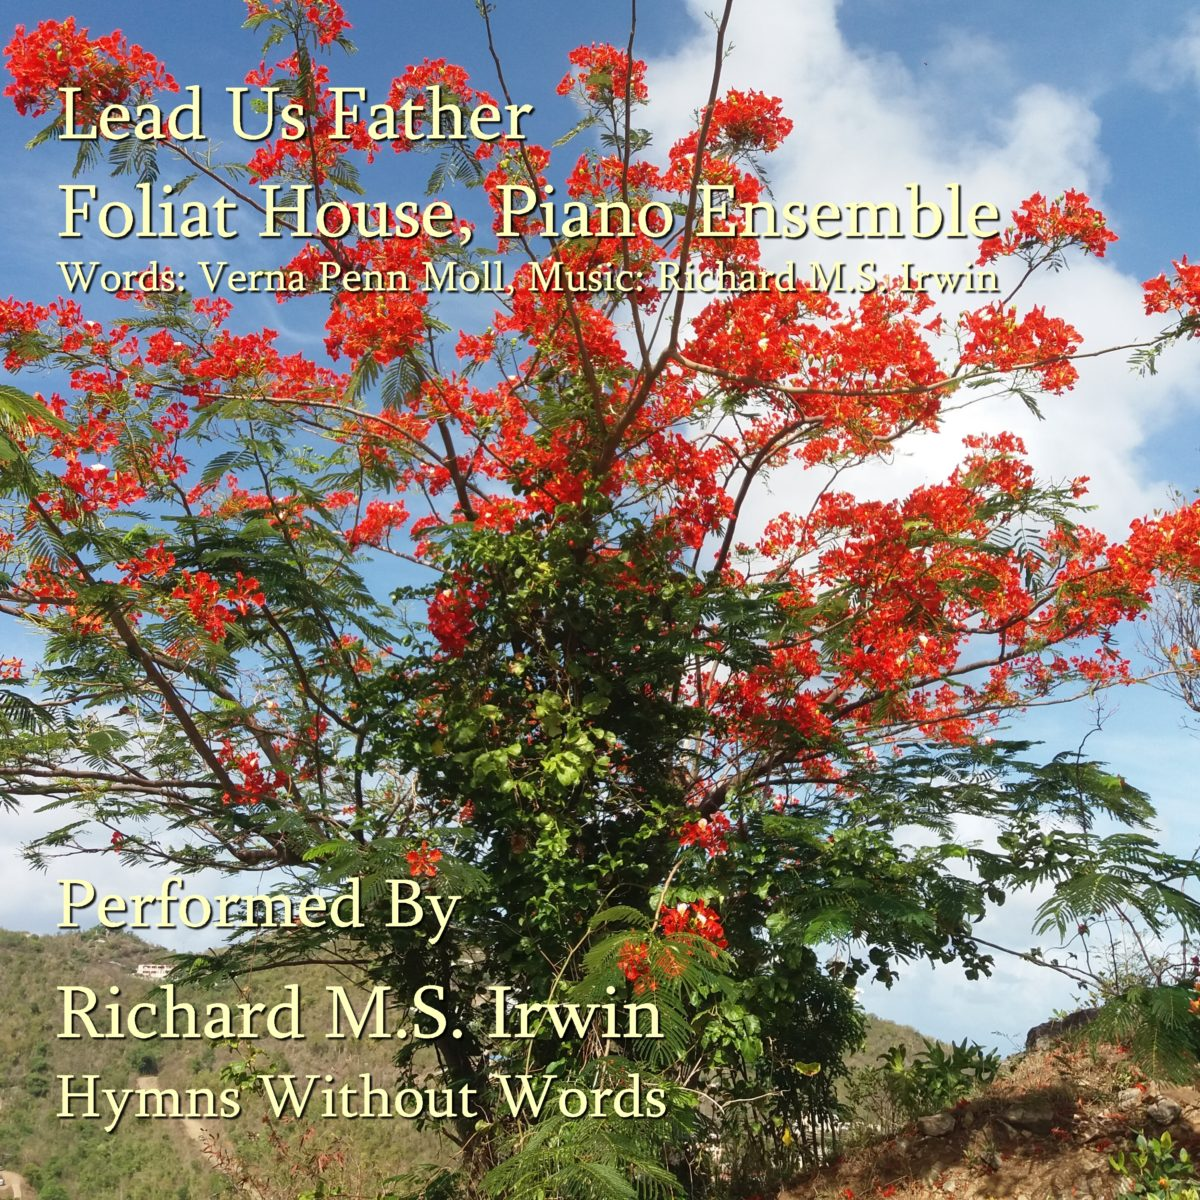 Lead Us, Father, Gently (Foliat House – 3 Verses) – Piano Ensemble